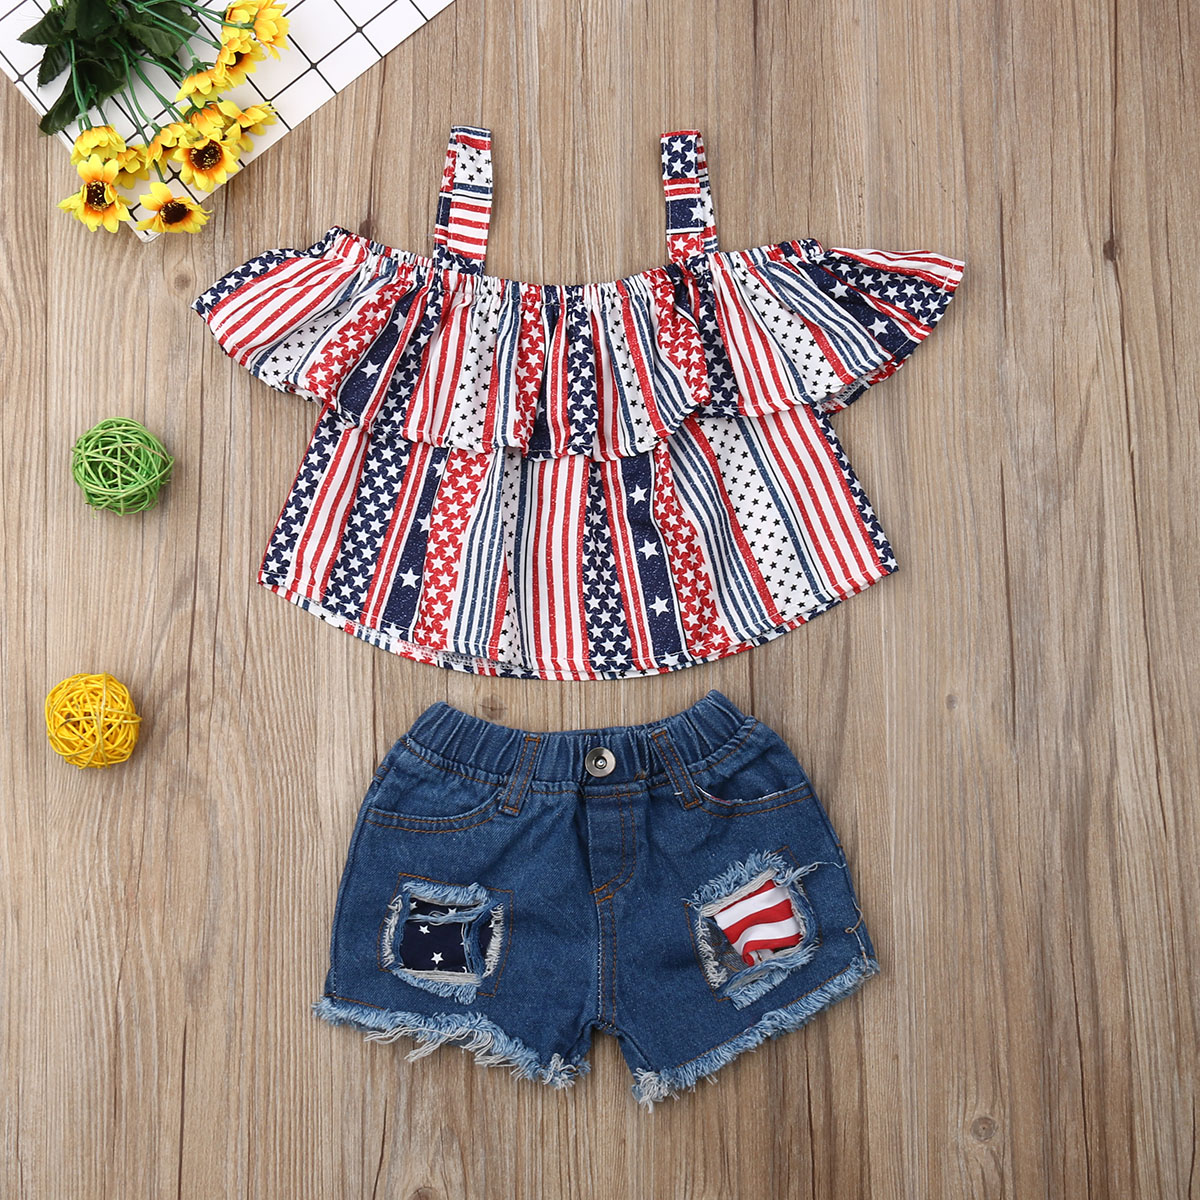 Pudcoco Summer Newest Fashion Toddler Baby Girl Clothes Off Shoulder Ruffle Striped Cropped Tops Denim Shorts 2Pcs Outfits Set